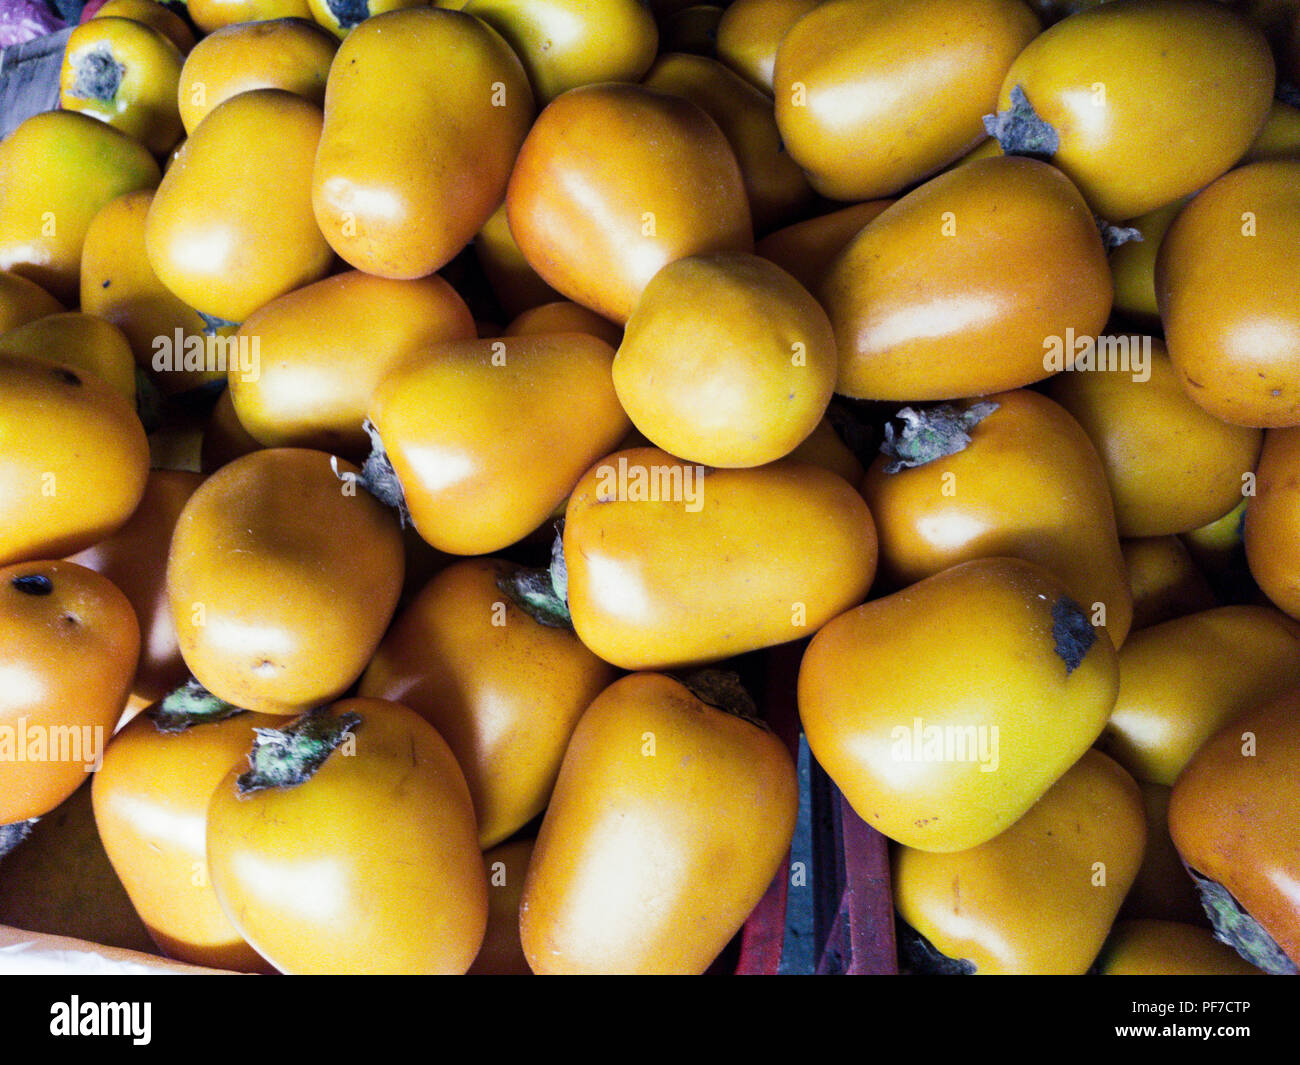 Solanum sessiliflorum or Cocona is a fruit that grows in tropical areas, mainly in the Peruvian Amazon - Stock Image